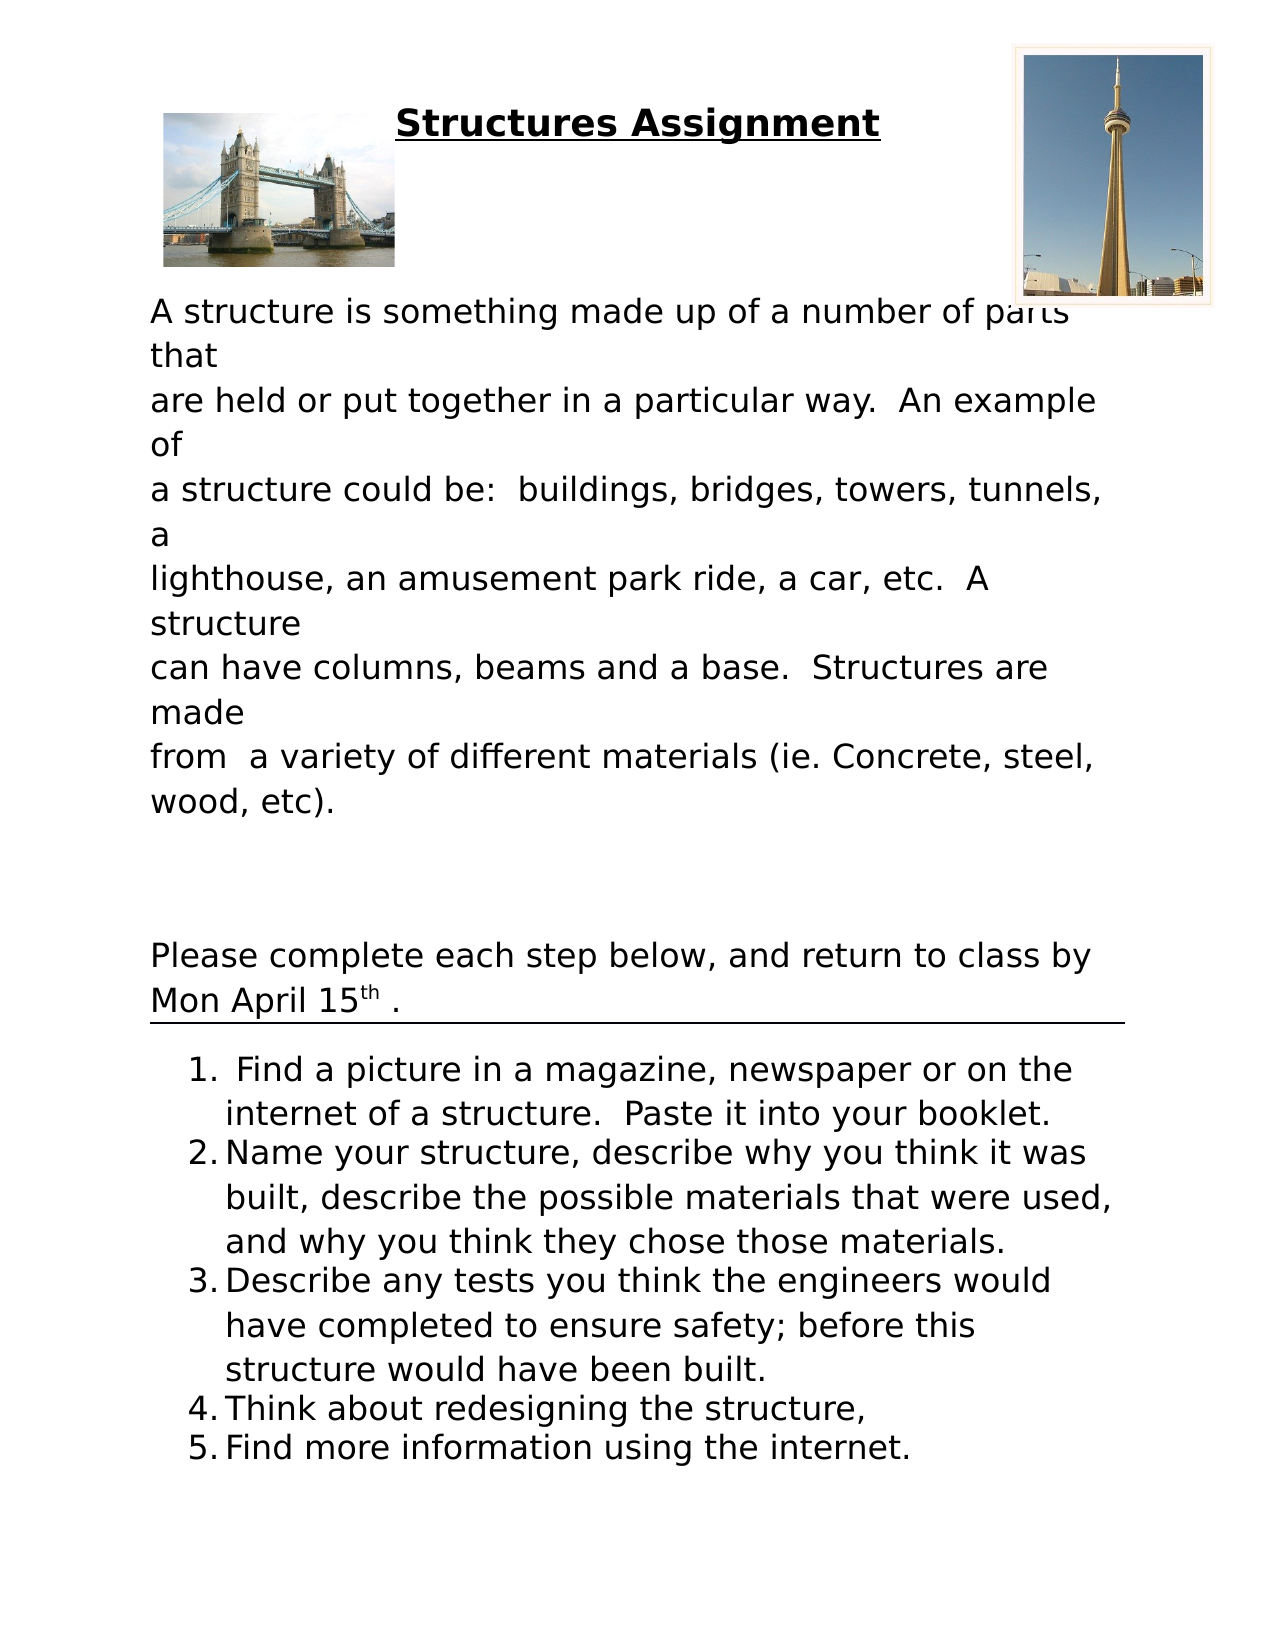 Structures Assignment Resource Preview